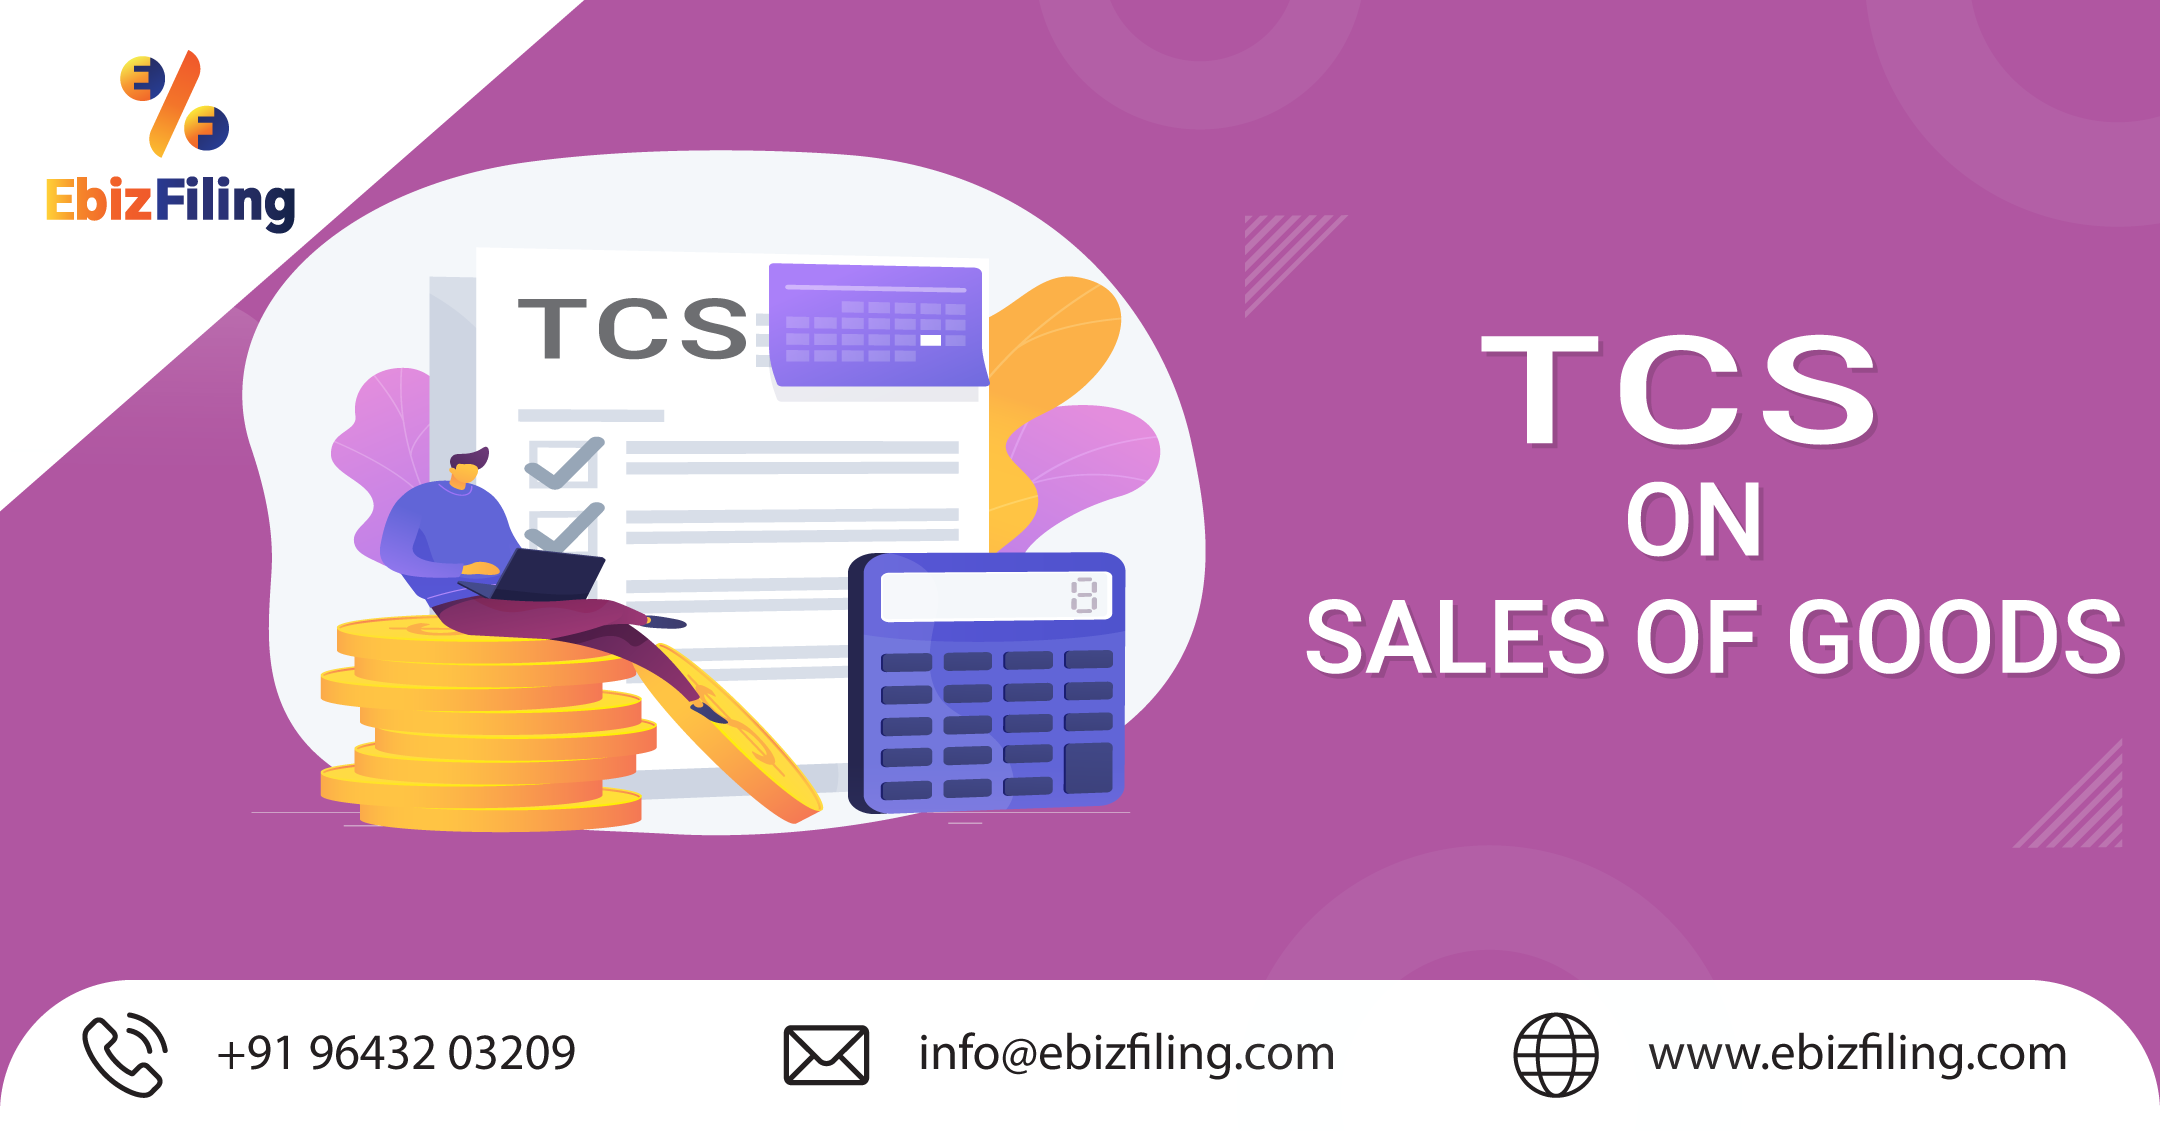 TCS, Tax Collected at source, section 206C (1H)Ebizfiling